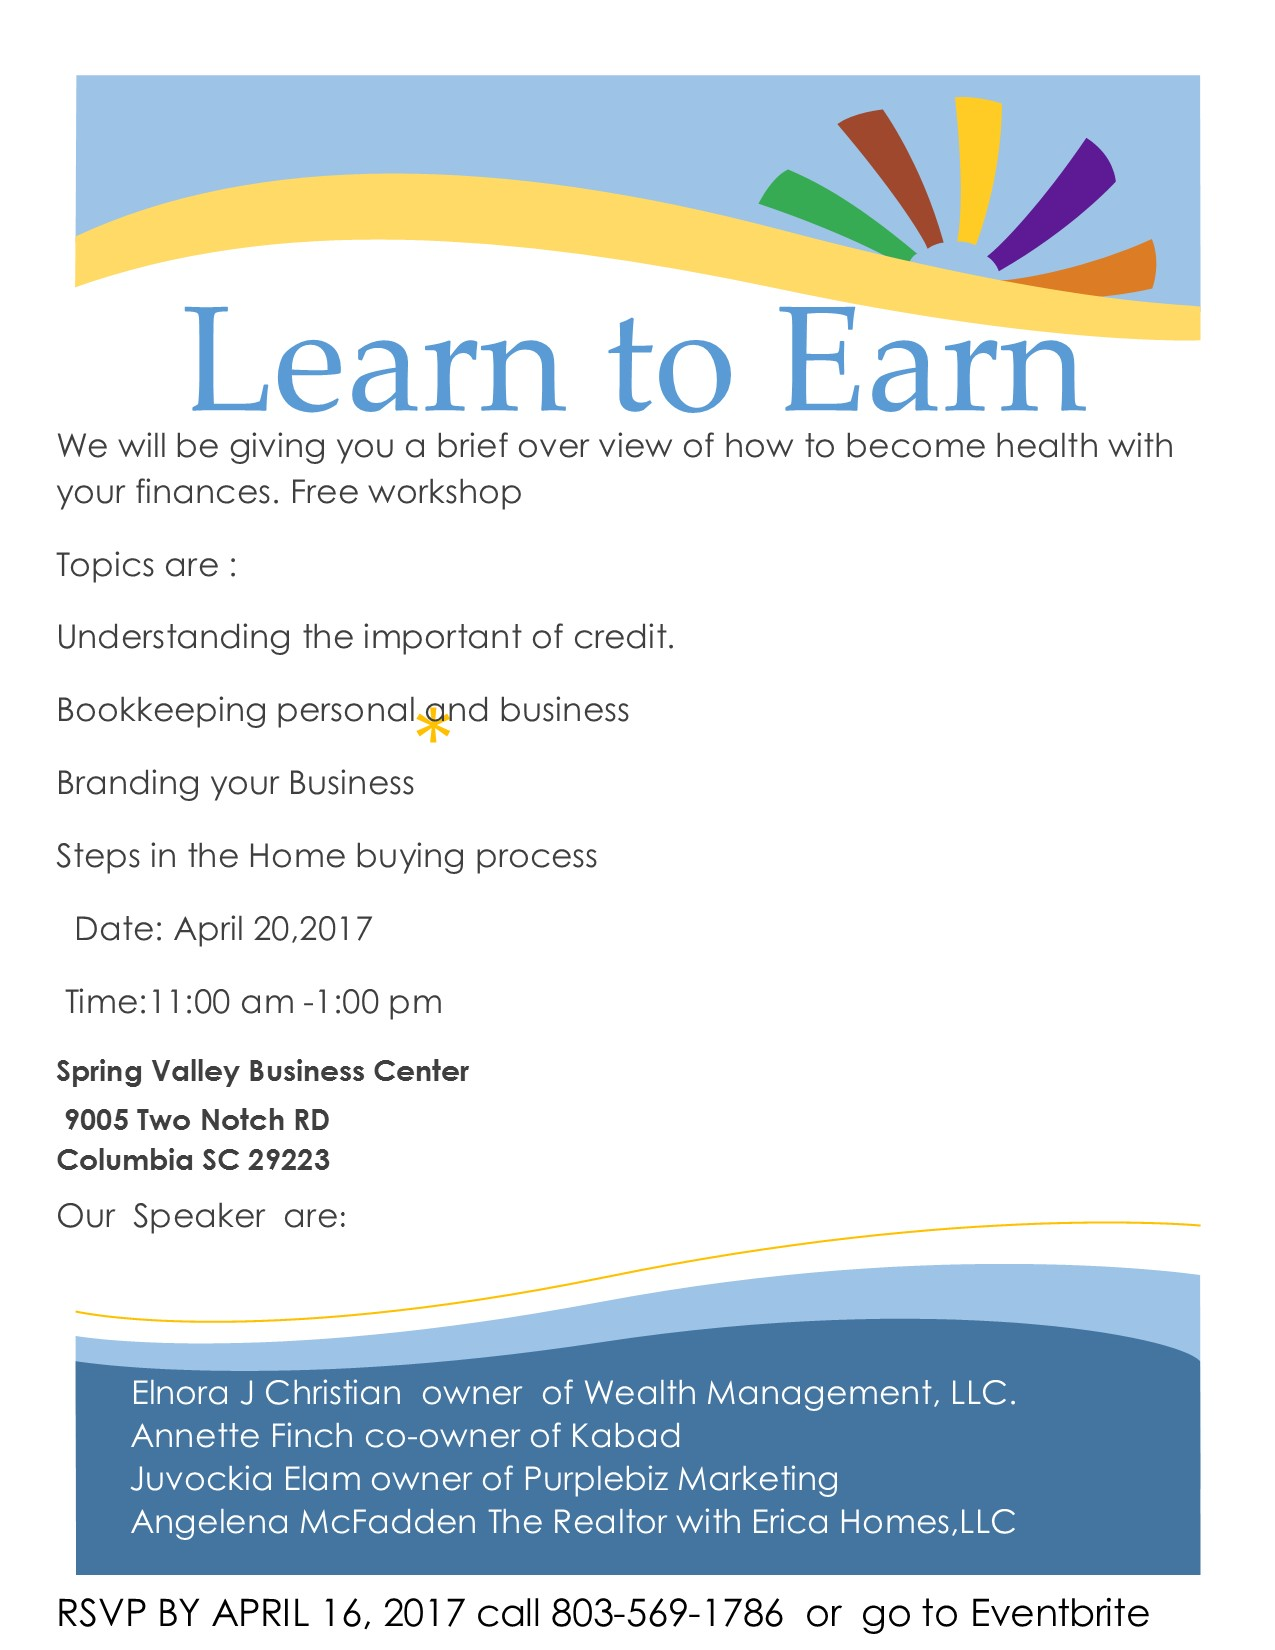 Learn To Earn Tickets, Wed, Apr 26, 2017 At 11:00 AM